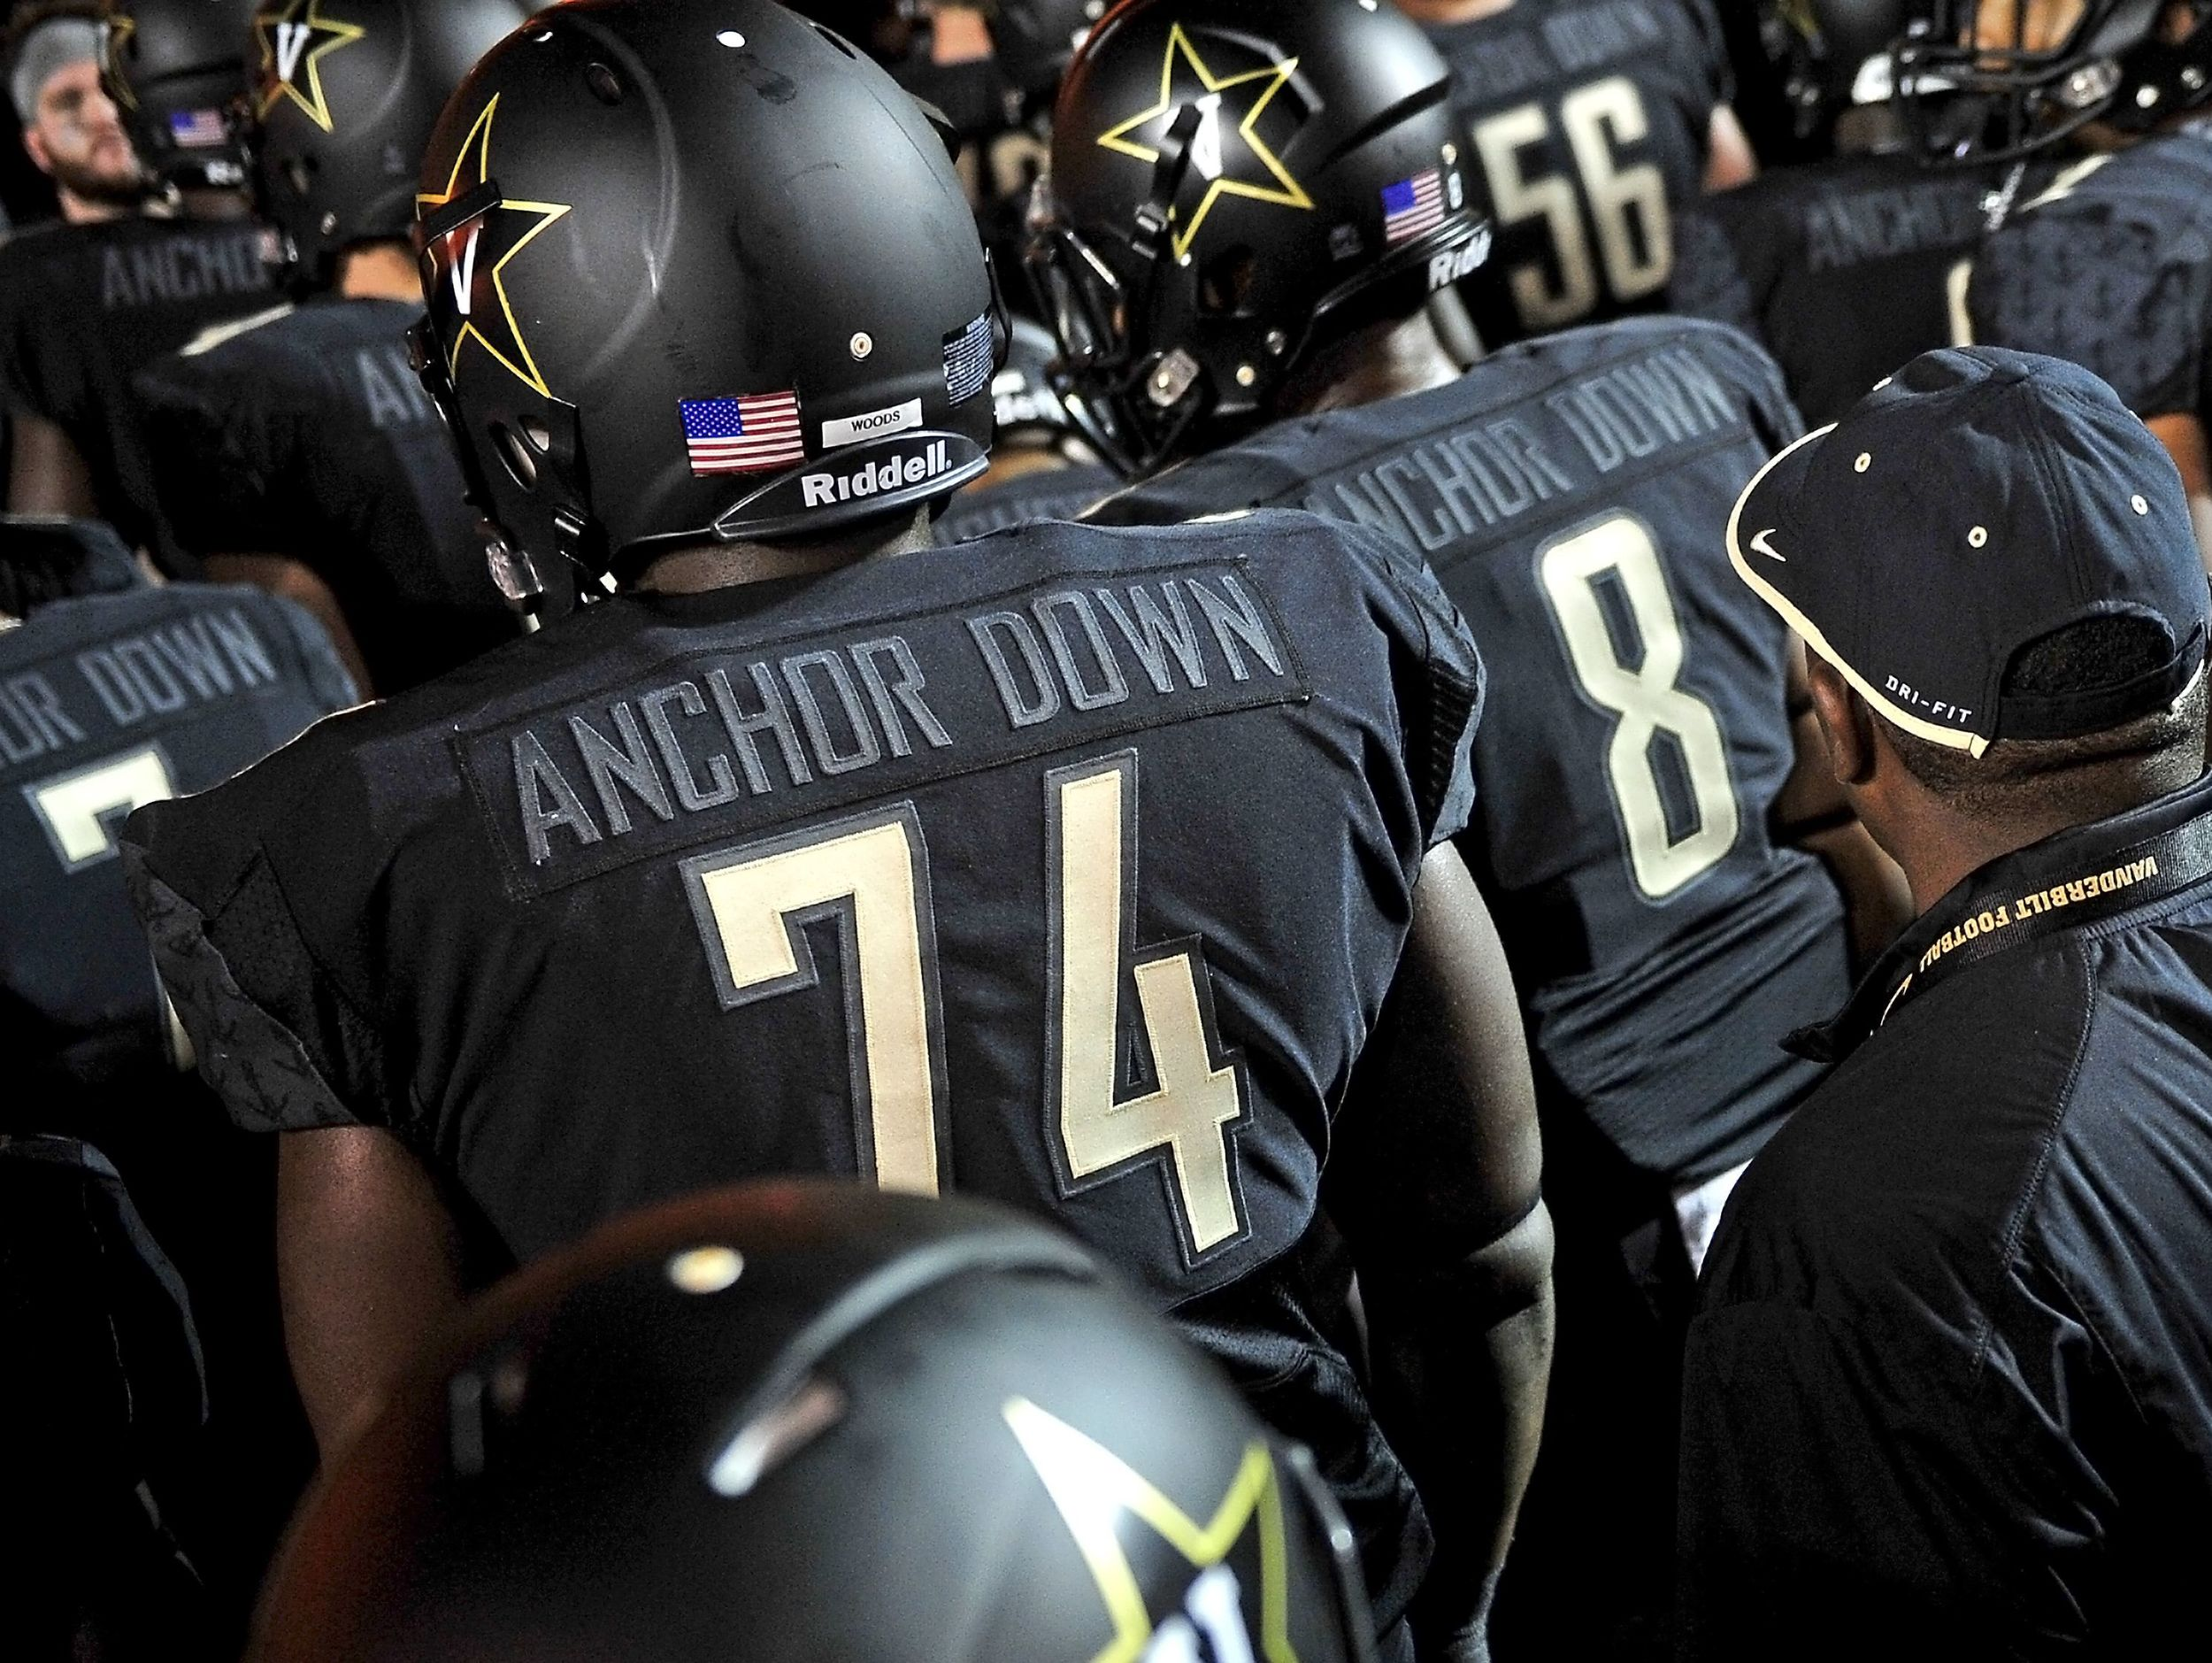 """Vanderbilt began their season with some fresh new all-black uniforms with the term """"Anchor Down"""" on the back where players names are supposed to go. According to NCAA rules, only Service Academics, such as Navy, Army, and Air Force, are allowed to use words on the back of their jerseys. The rule book also says that a team that does commit the """"crime"""" is supposed to be charged a timeout per quarter. Vandy was charged a timeout in the second quarter but then Vandy officials bought an email from the SEC that approved the jerseys. After the confusion was cleared, Vandy then went on to lose 37-7 to Temple in front of the home crowd. If i was them I would burn those jerseys."""